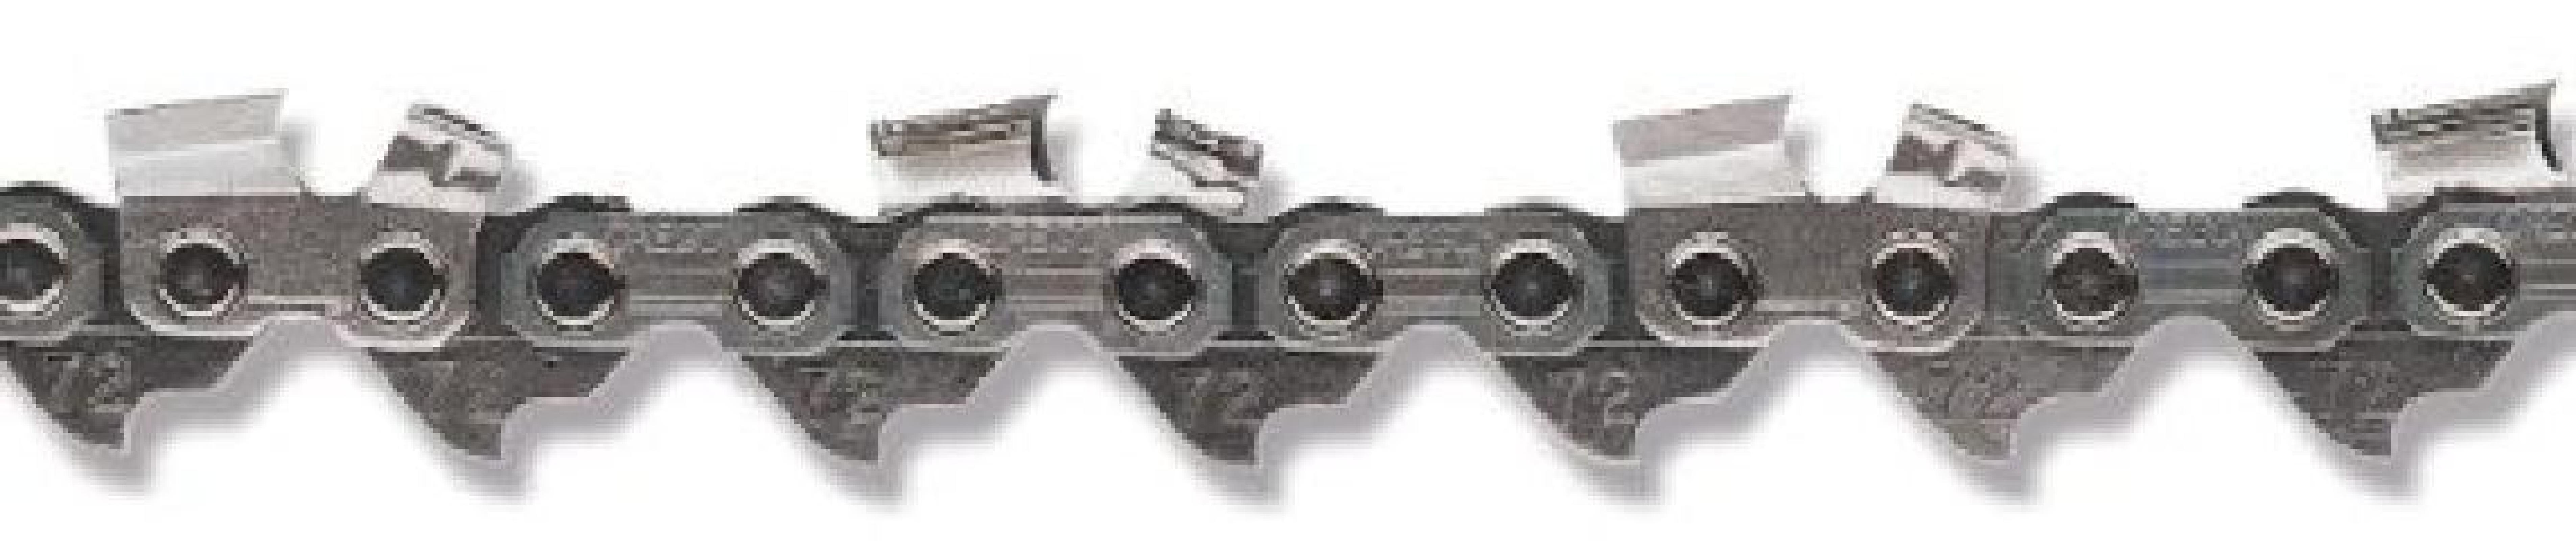 ADVANCECUT SAW CHAIN, 3/ part# 72V068G by Oregon